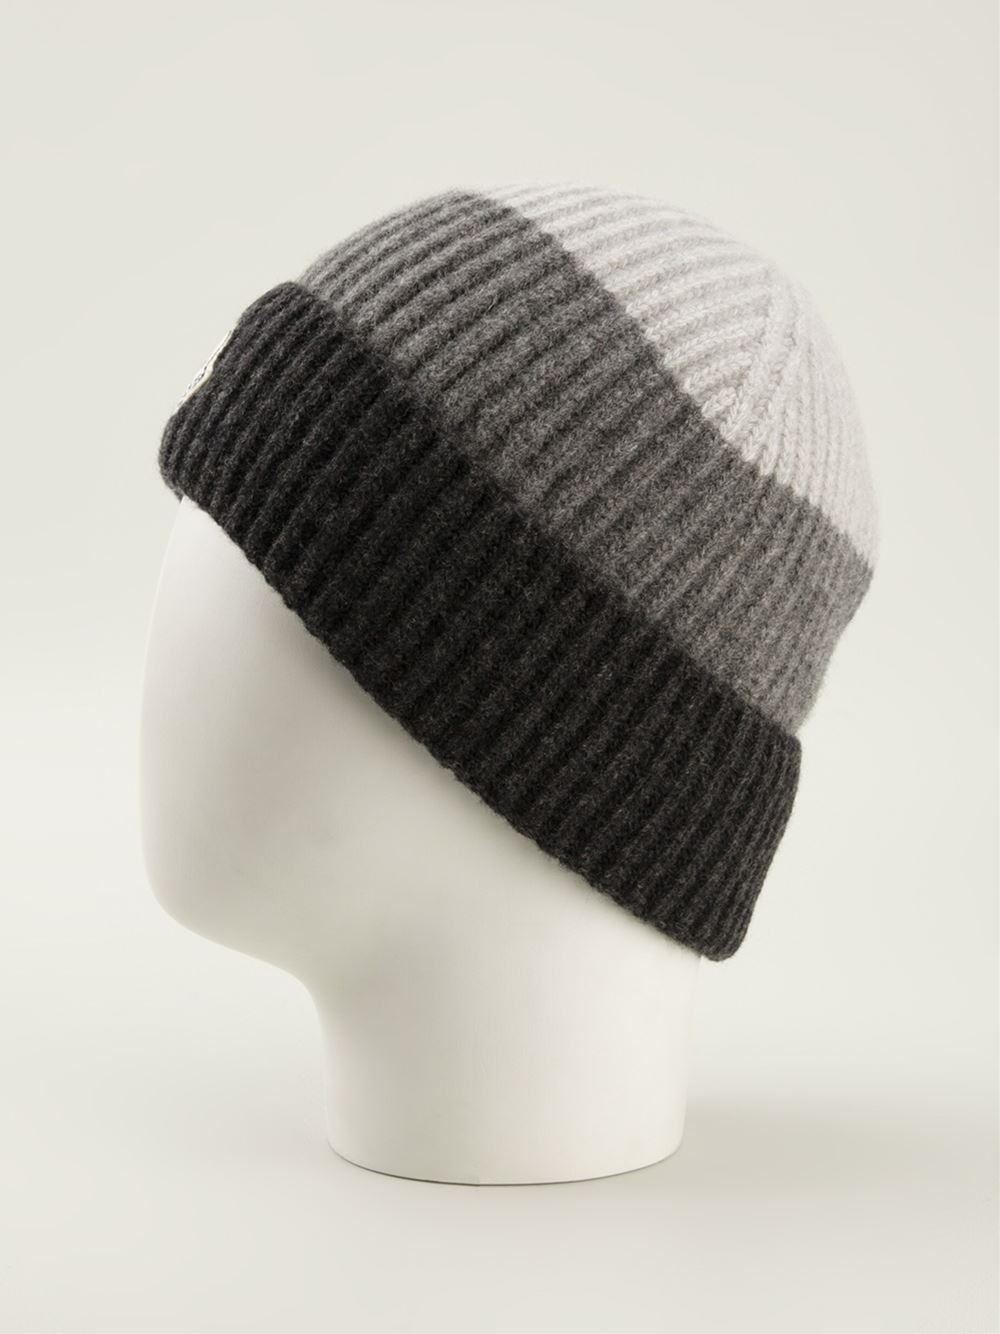 1b0f2b20f13 Lyst - Moncler Striped Beanie Hat in Black for Men